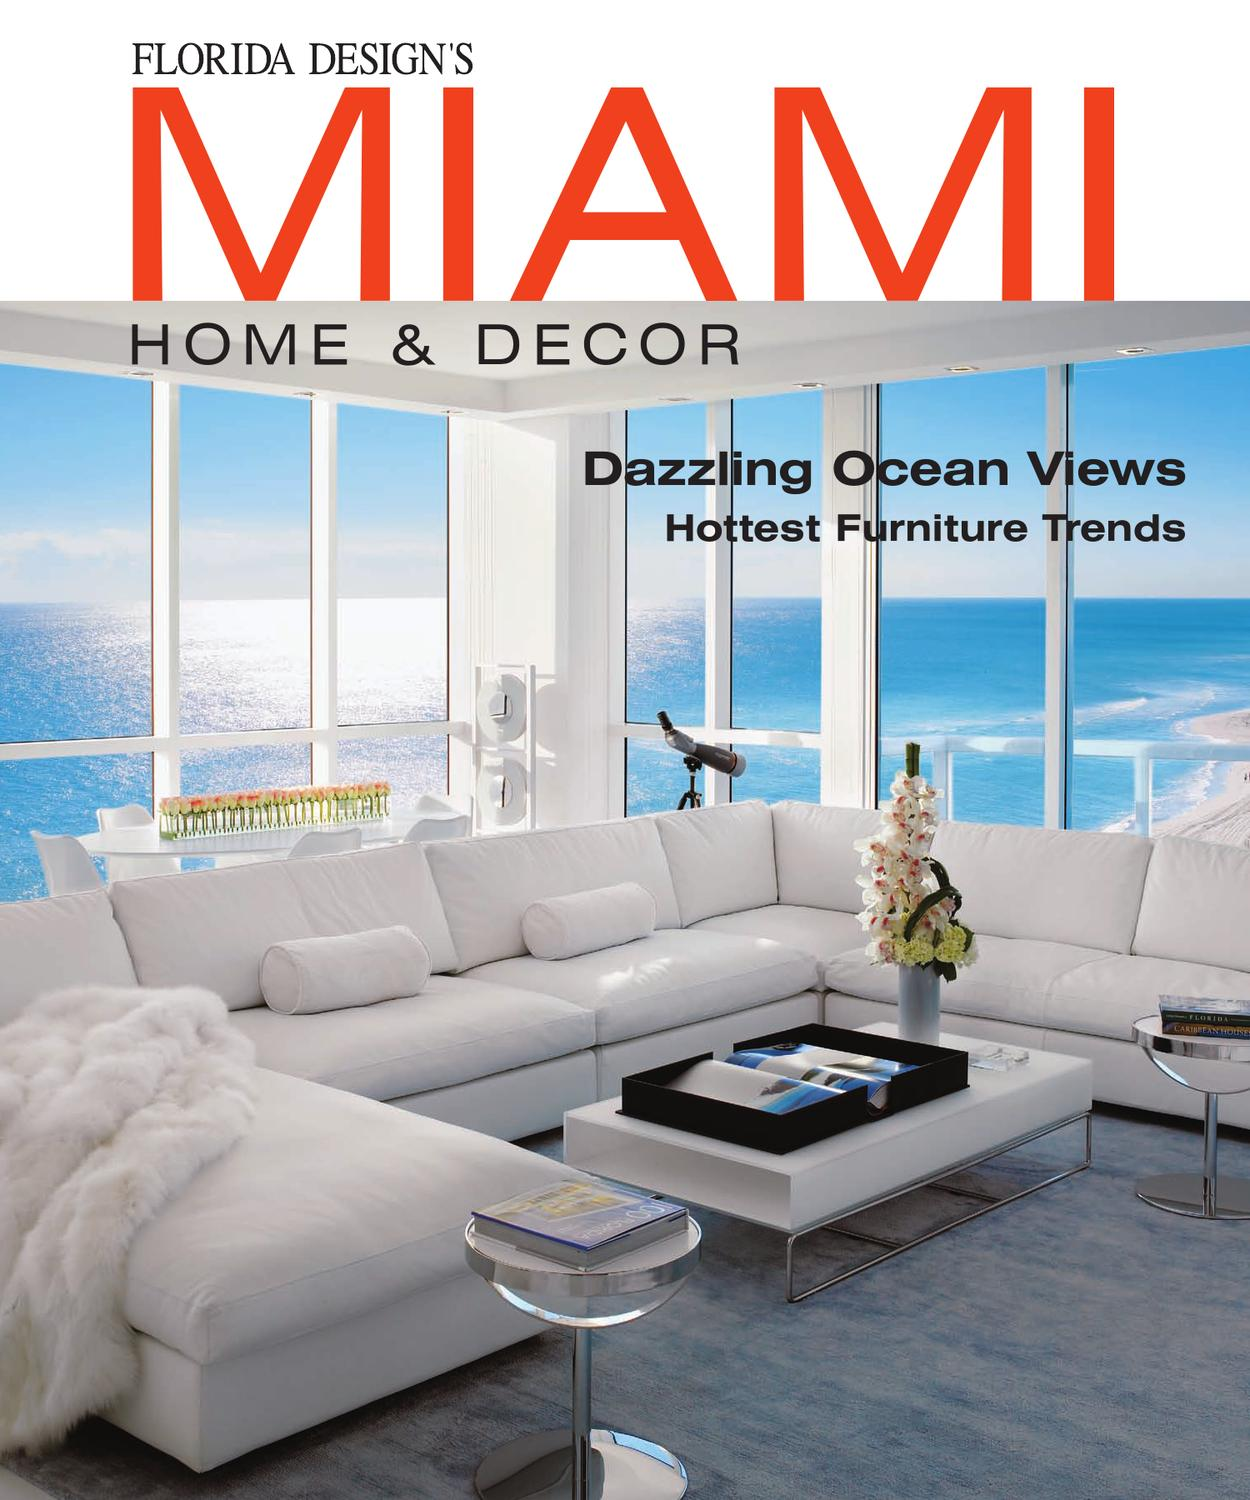 Home Decoration Magazine miami home & decor magazinebill fleak - issuu